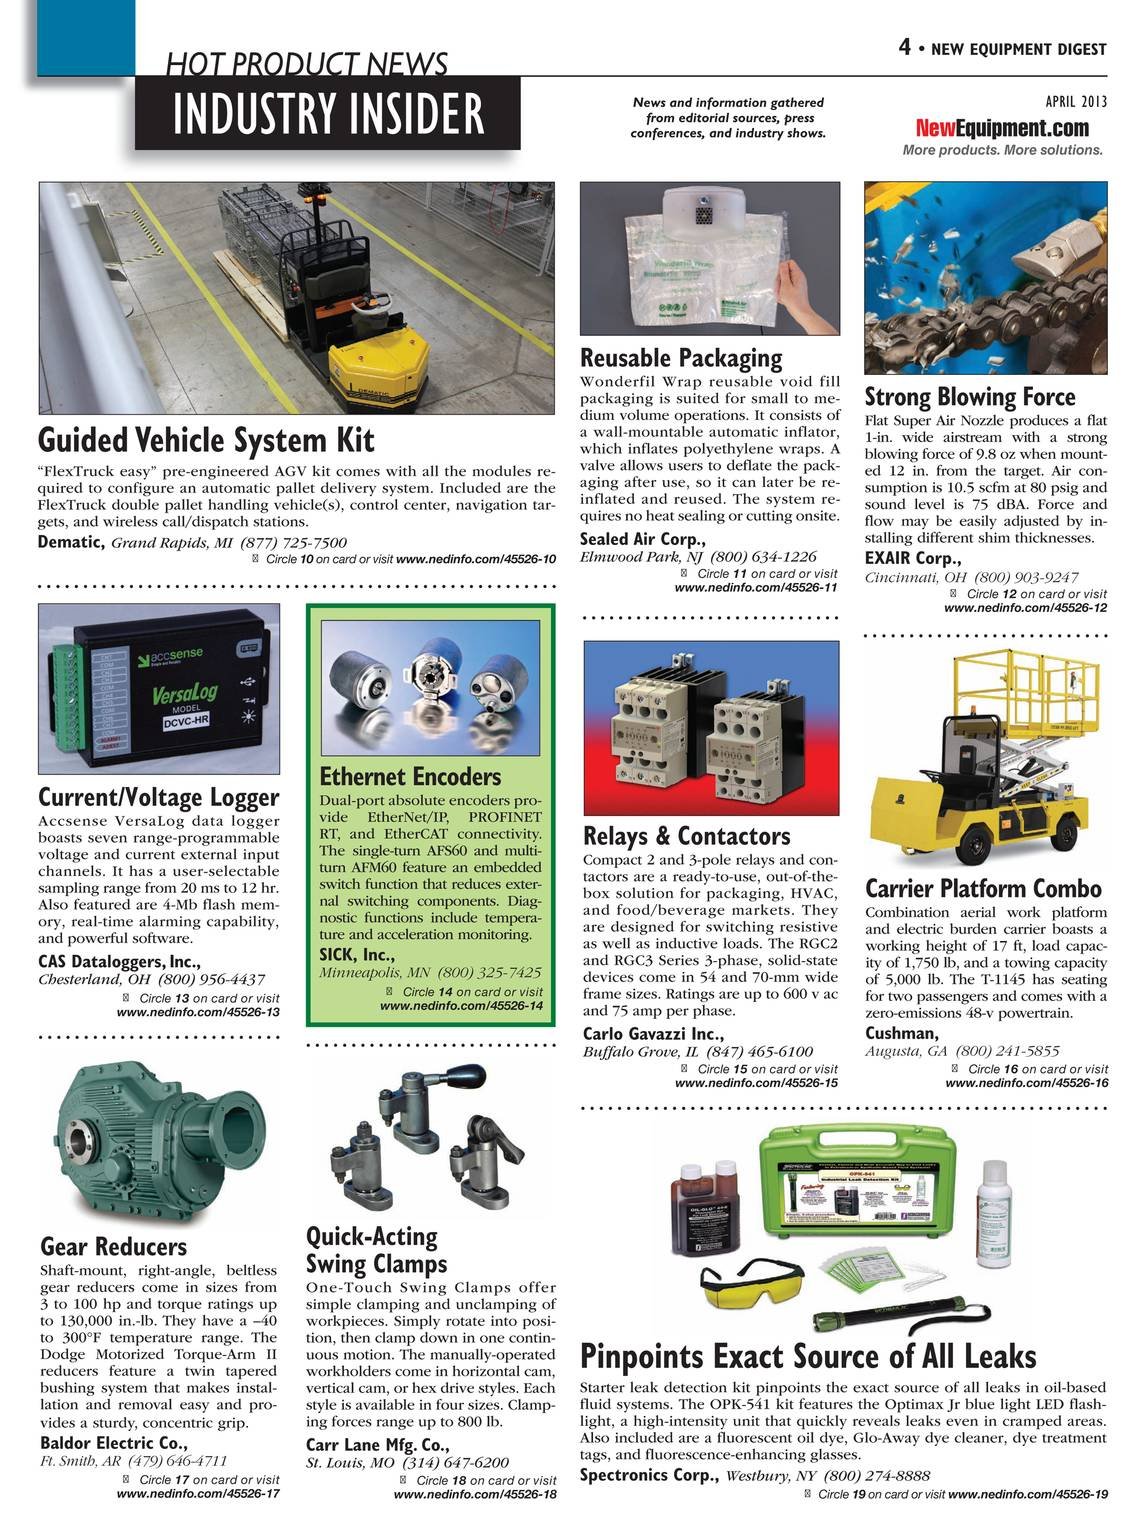 New Equipment Digest - April 2013 - page 3